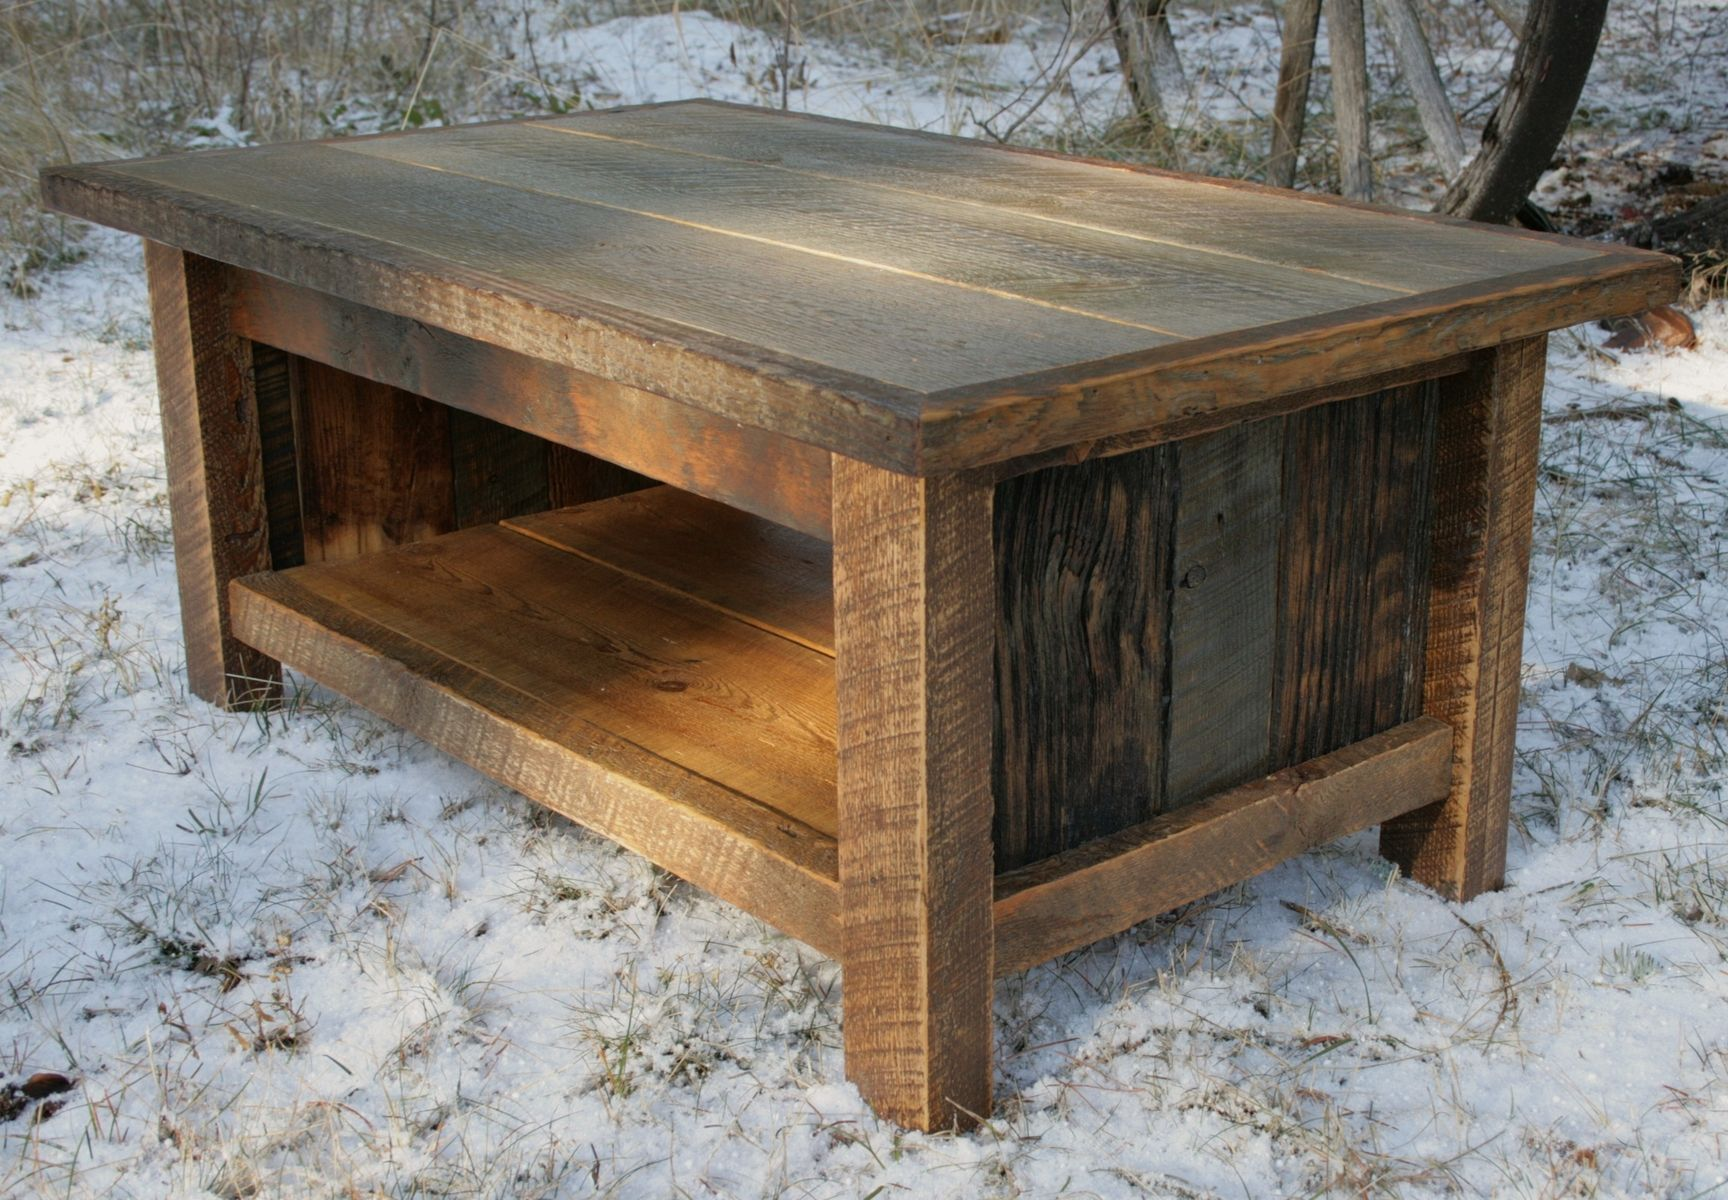 Hand Crafted Rustic Reclaimed Coffee Table By Echo Peak Design